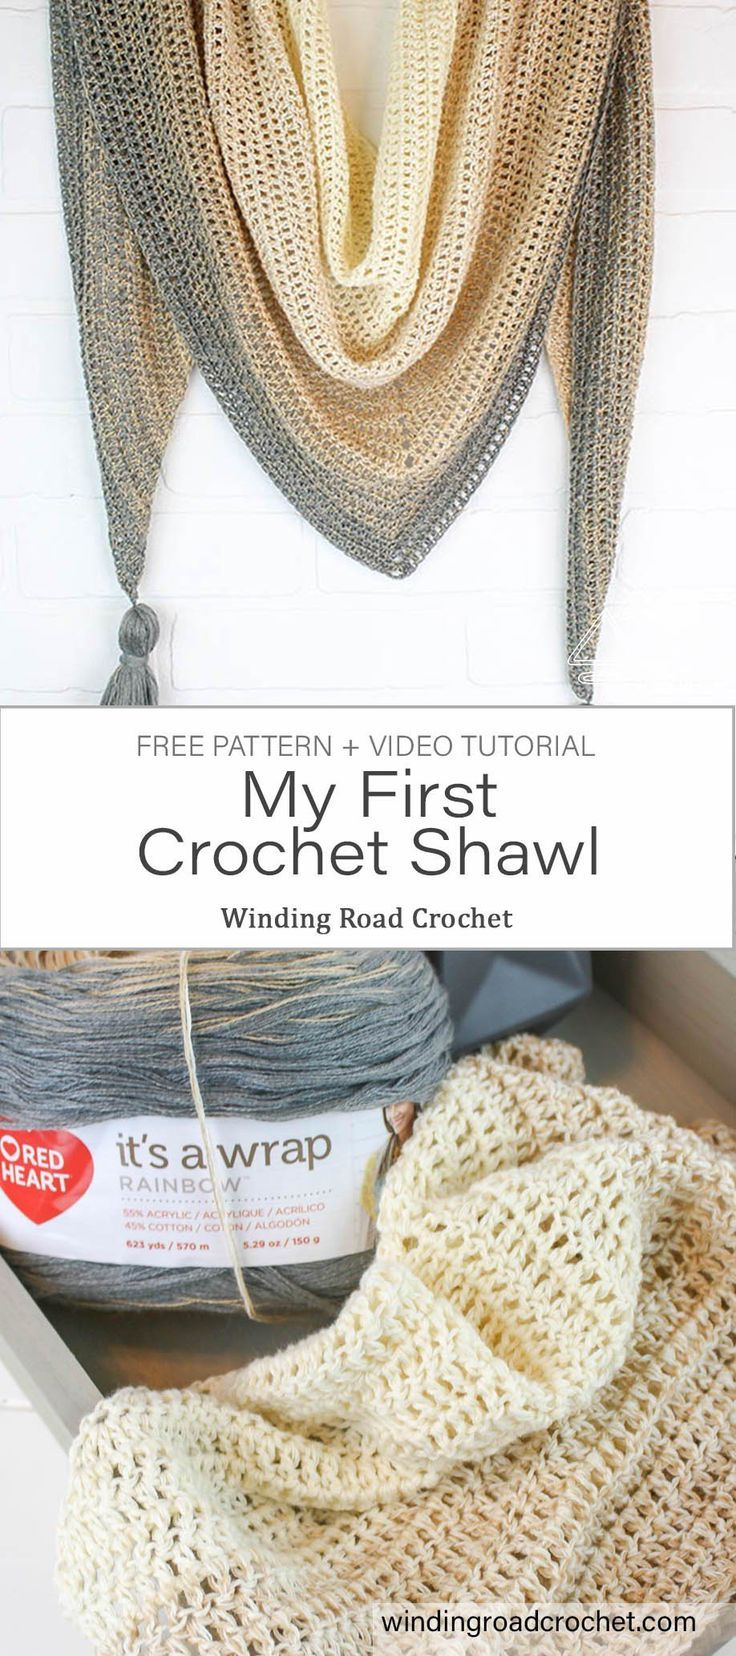 My First Triangle Shawl Free Crochet Pattern - Winding Road Crochet